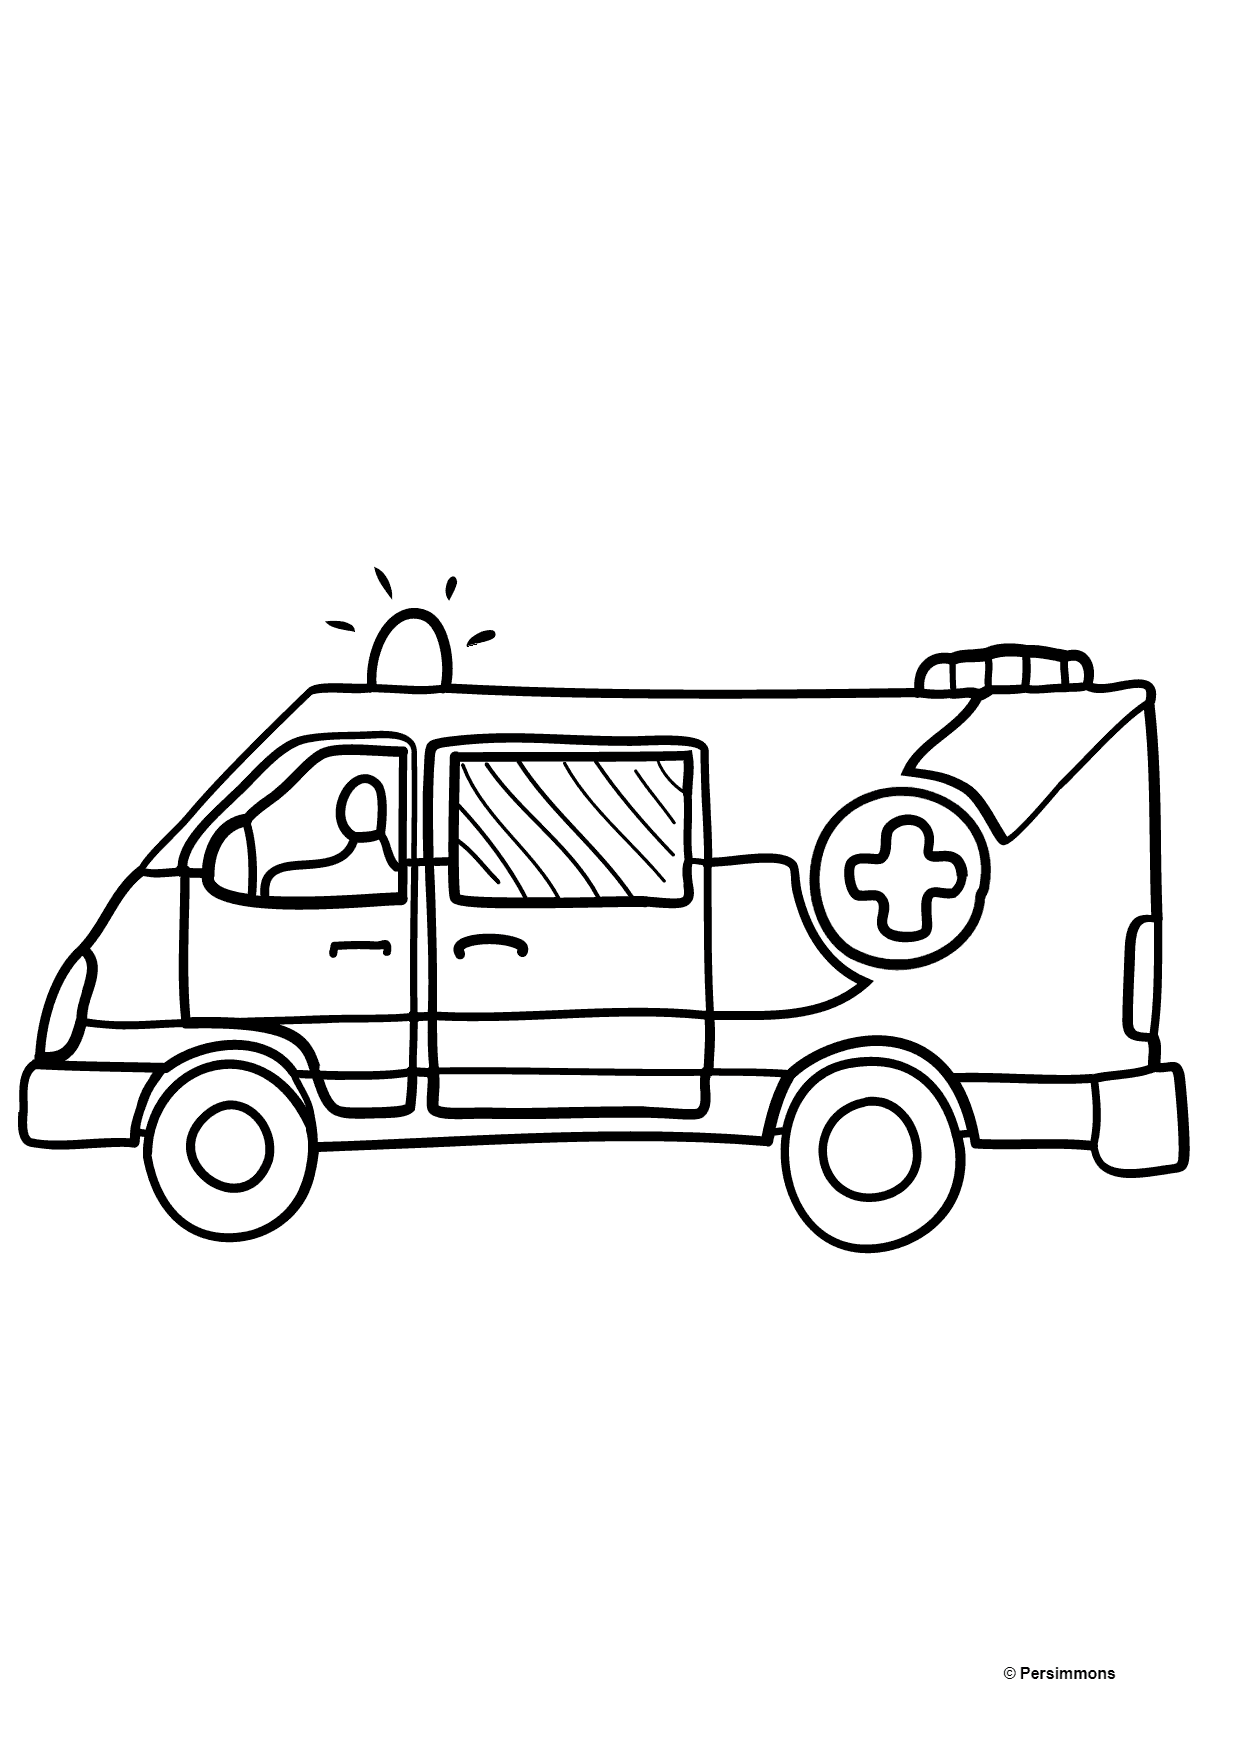 Coloring Page - An Ambulance for Kids